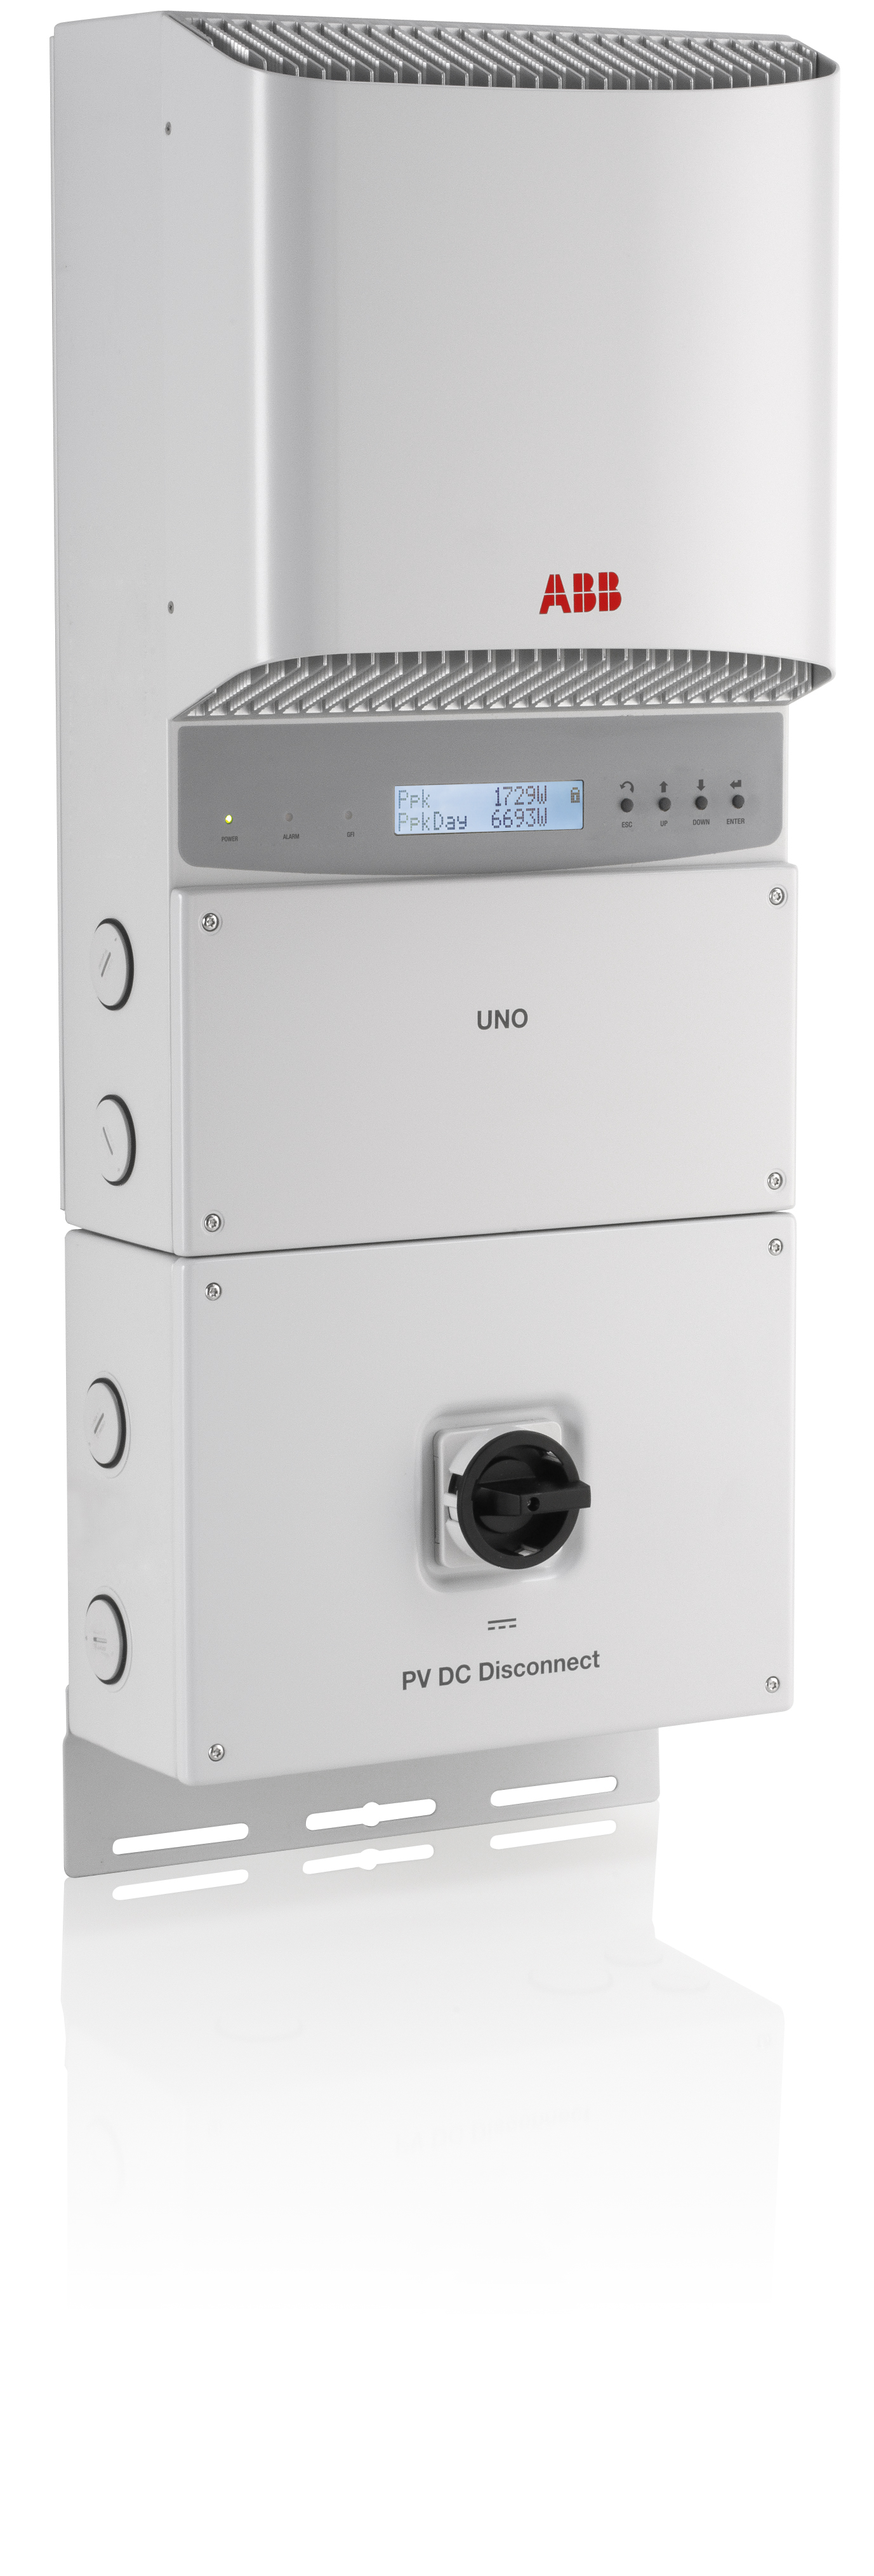 ABB, PVI-3.0-OUTD-S-US-A-BWP, NON-ISOLATED STRING INVERTER, 3000W, 208/240/277 VAC, DUAL MPPT WITH AFCI, 5 YR WARRANTY